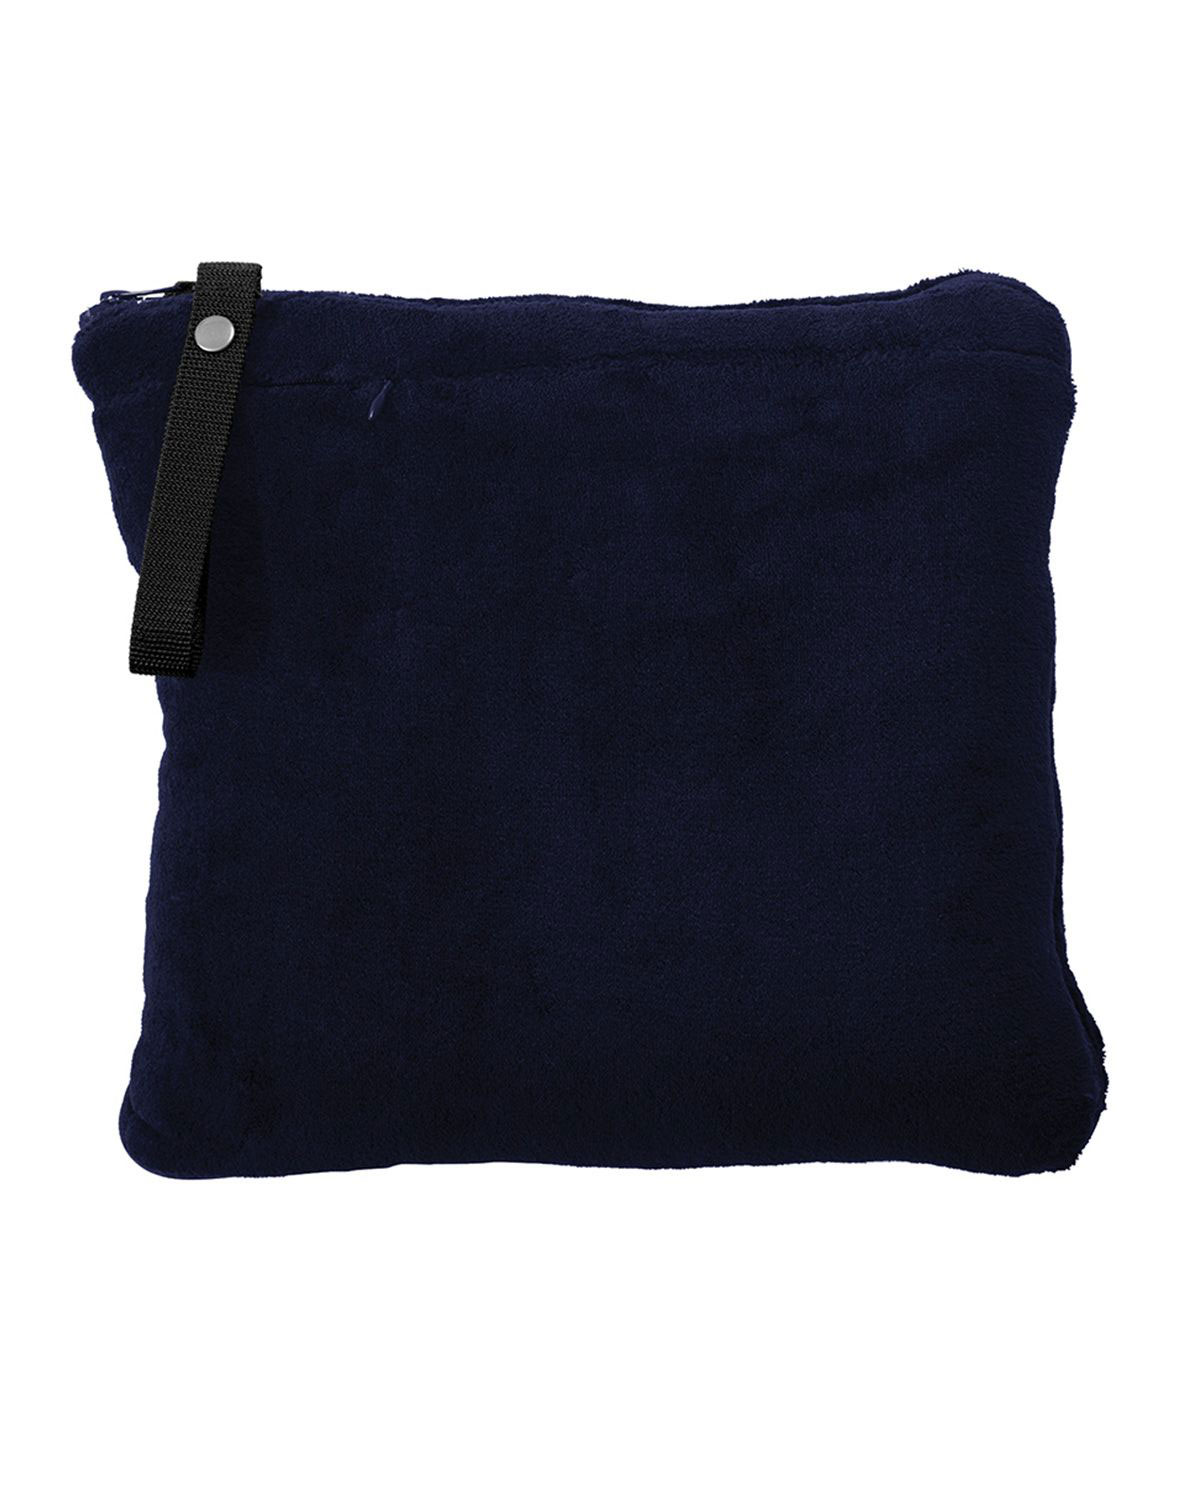 Port Authority BP75 Packable Travel Blanket